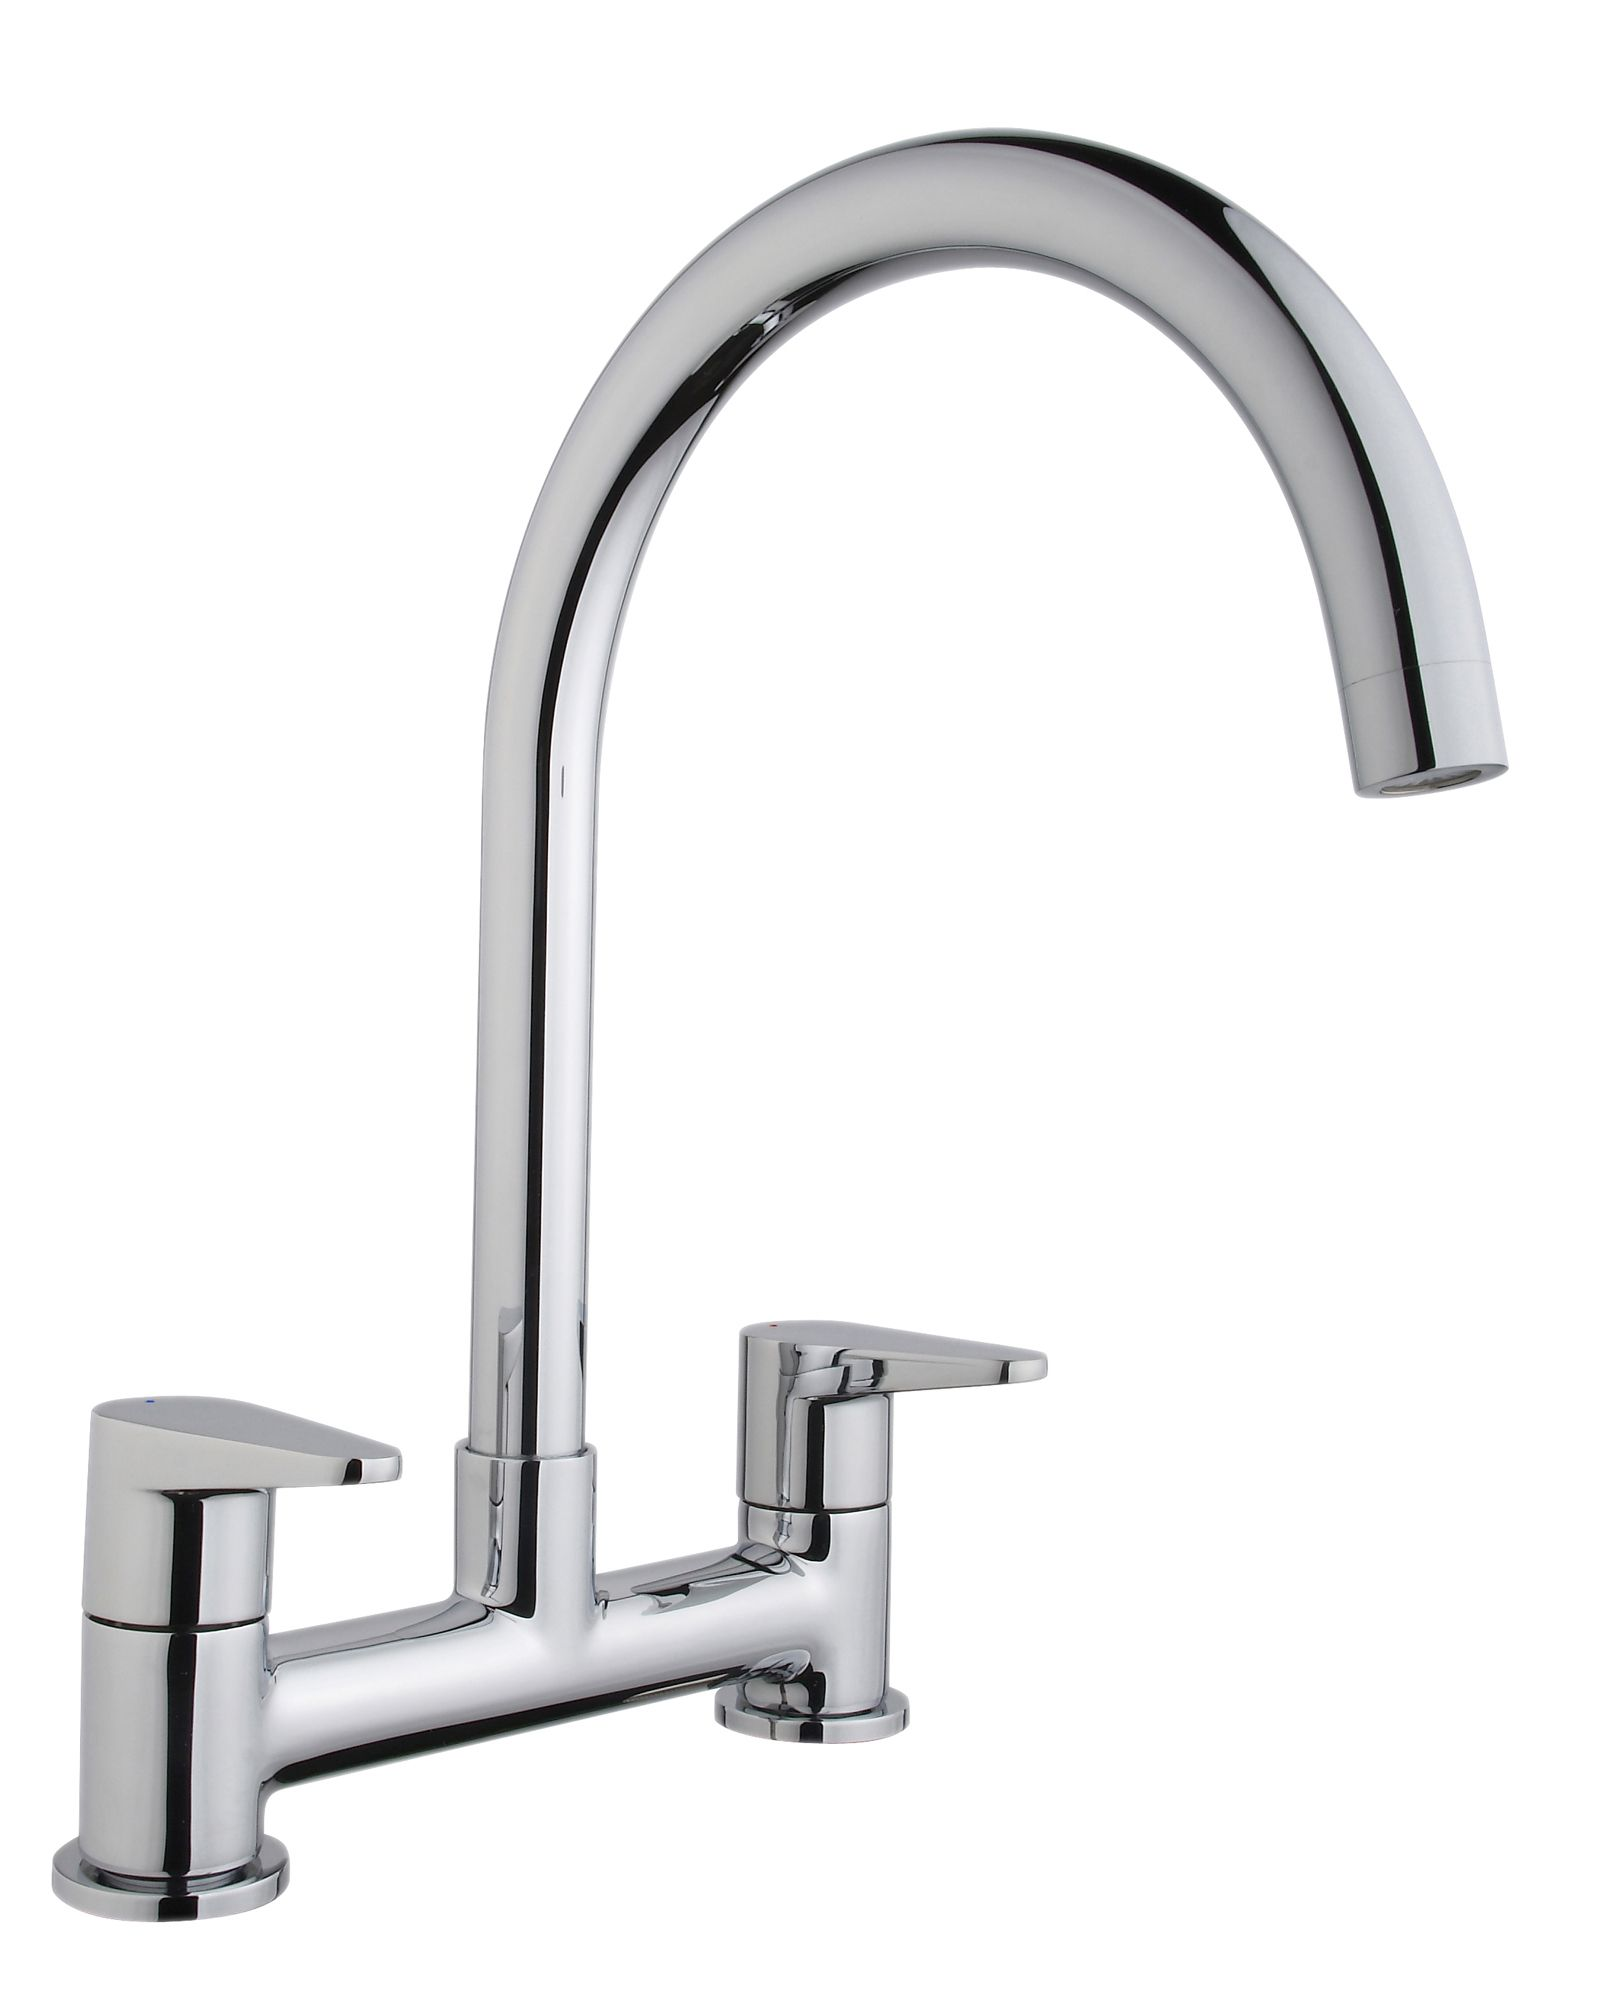 Cooke & Lewis Tone Chrome Finish Deck Mixer Tap ...